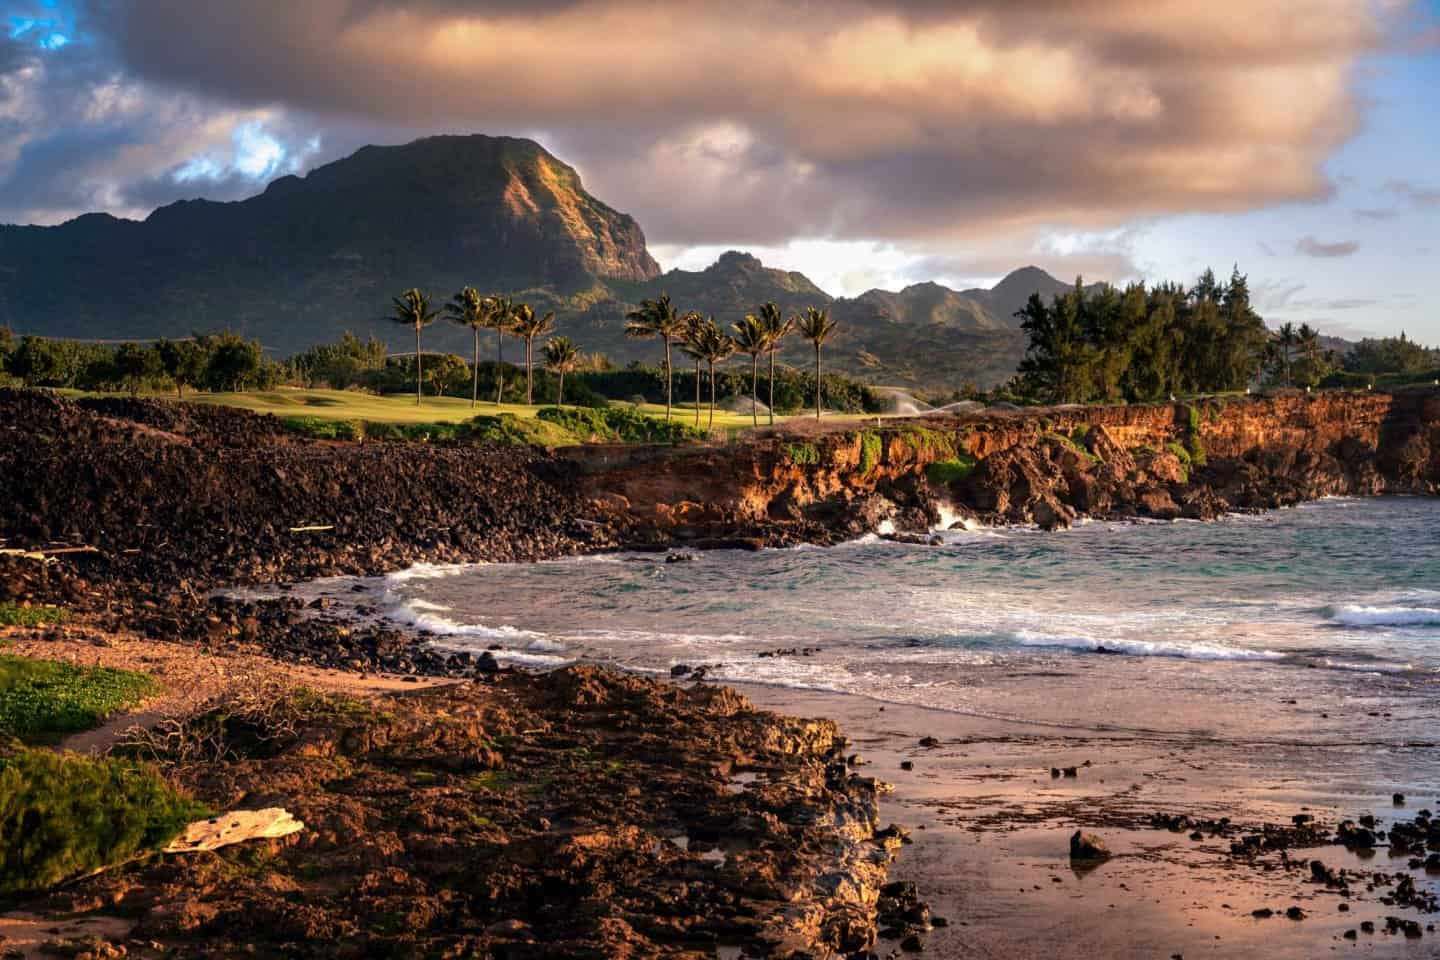 Sunrise photography from the Mahaulepu Heritage Trail is a must on any Kauai photograph itinerary.